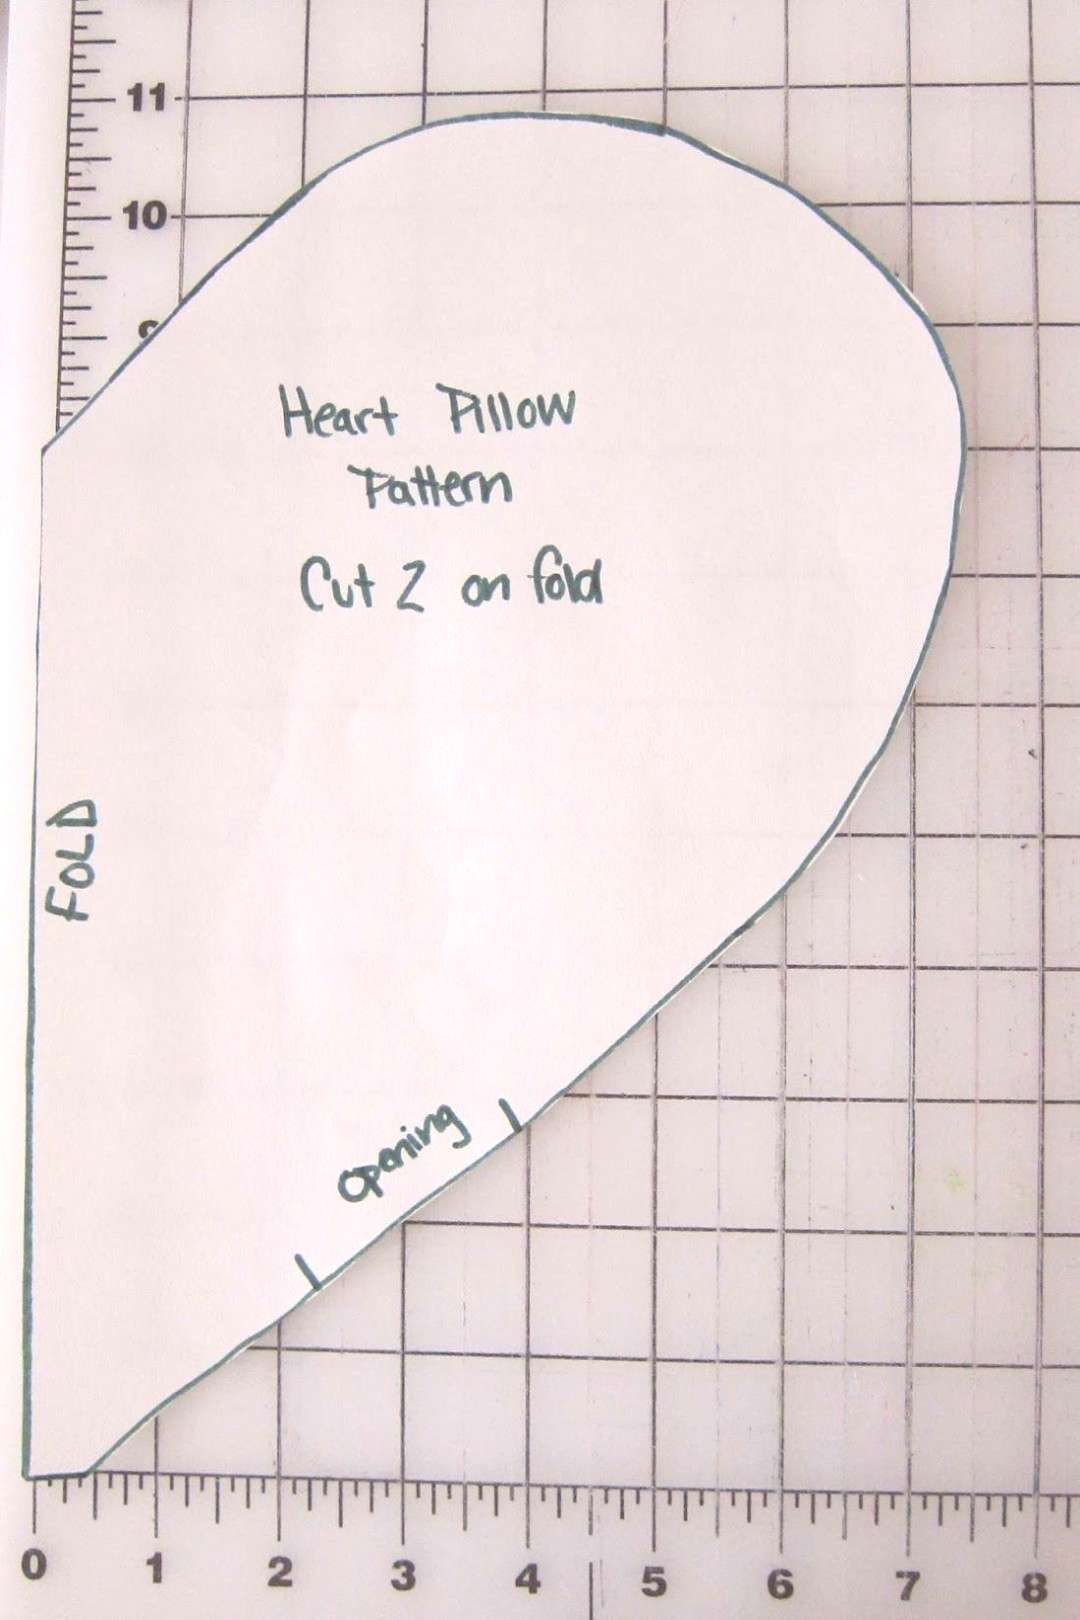 Heart Pillow Sewing Pattern Heart Pillows Are Just Right To Tuck Under The Arm After Breast -